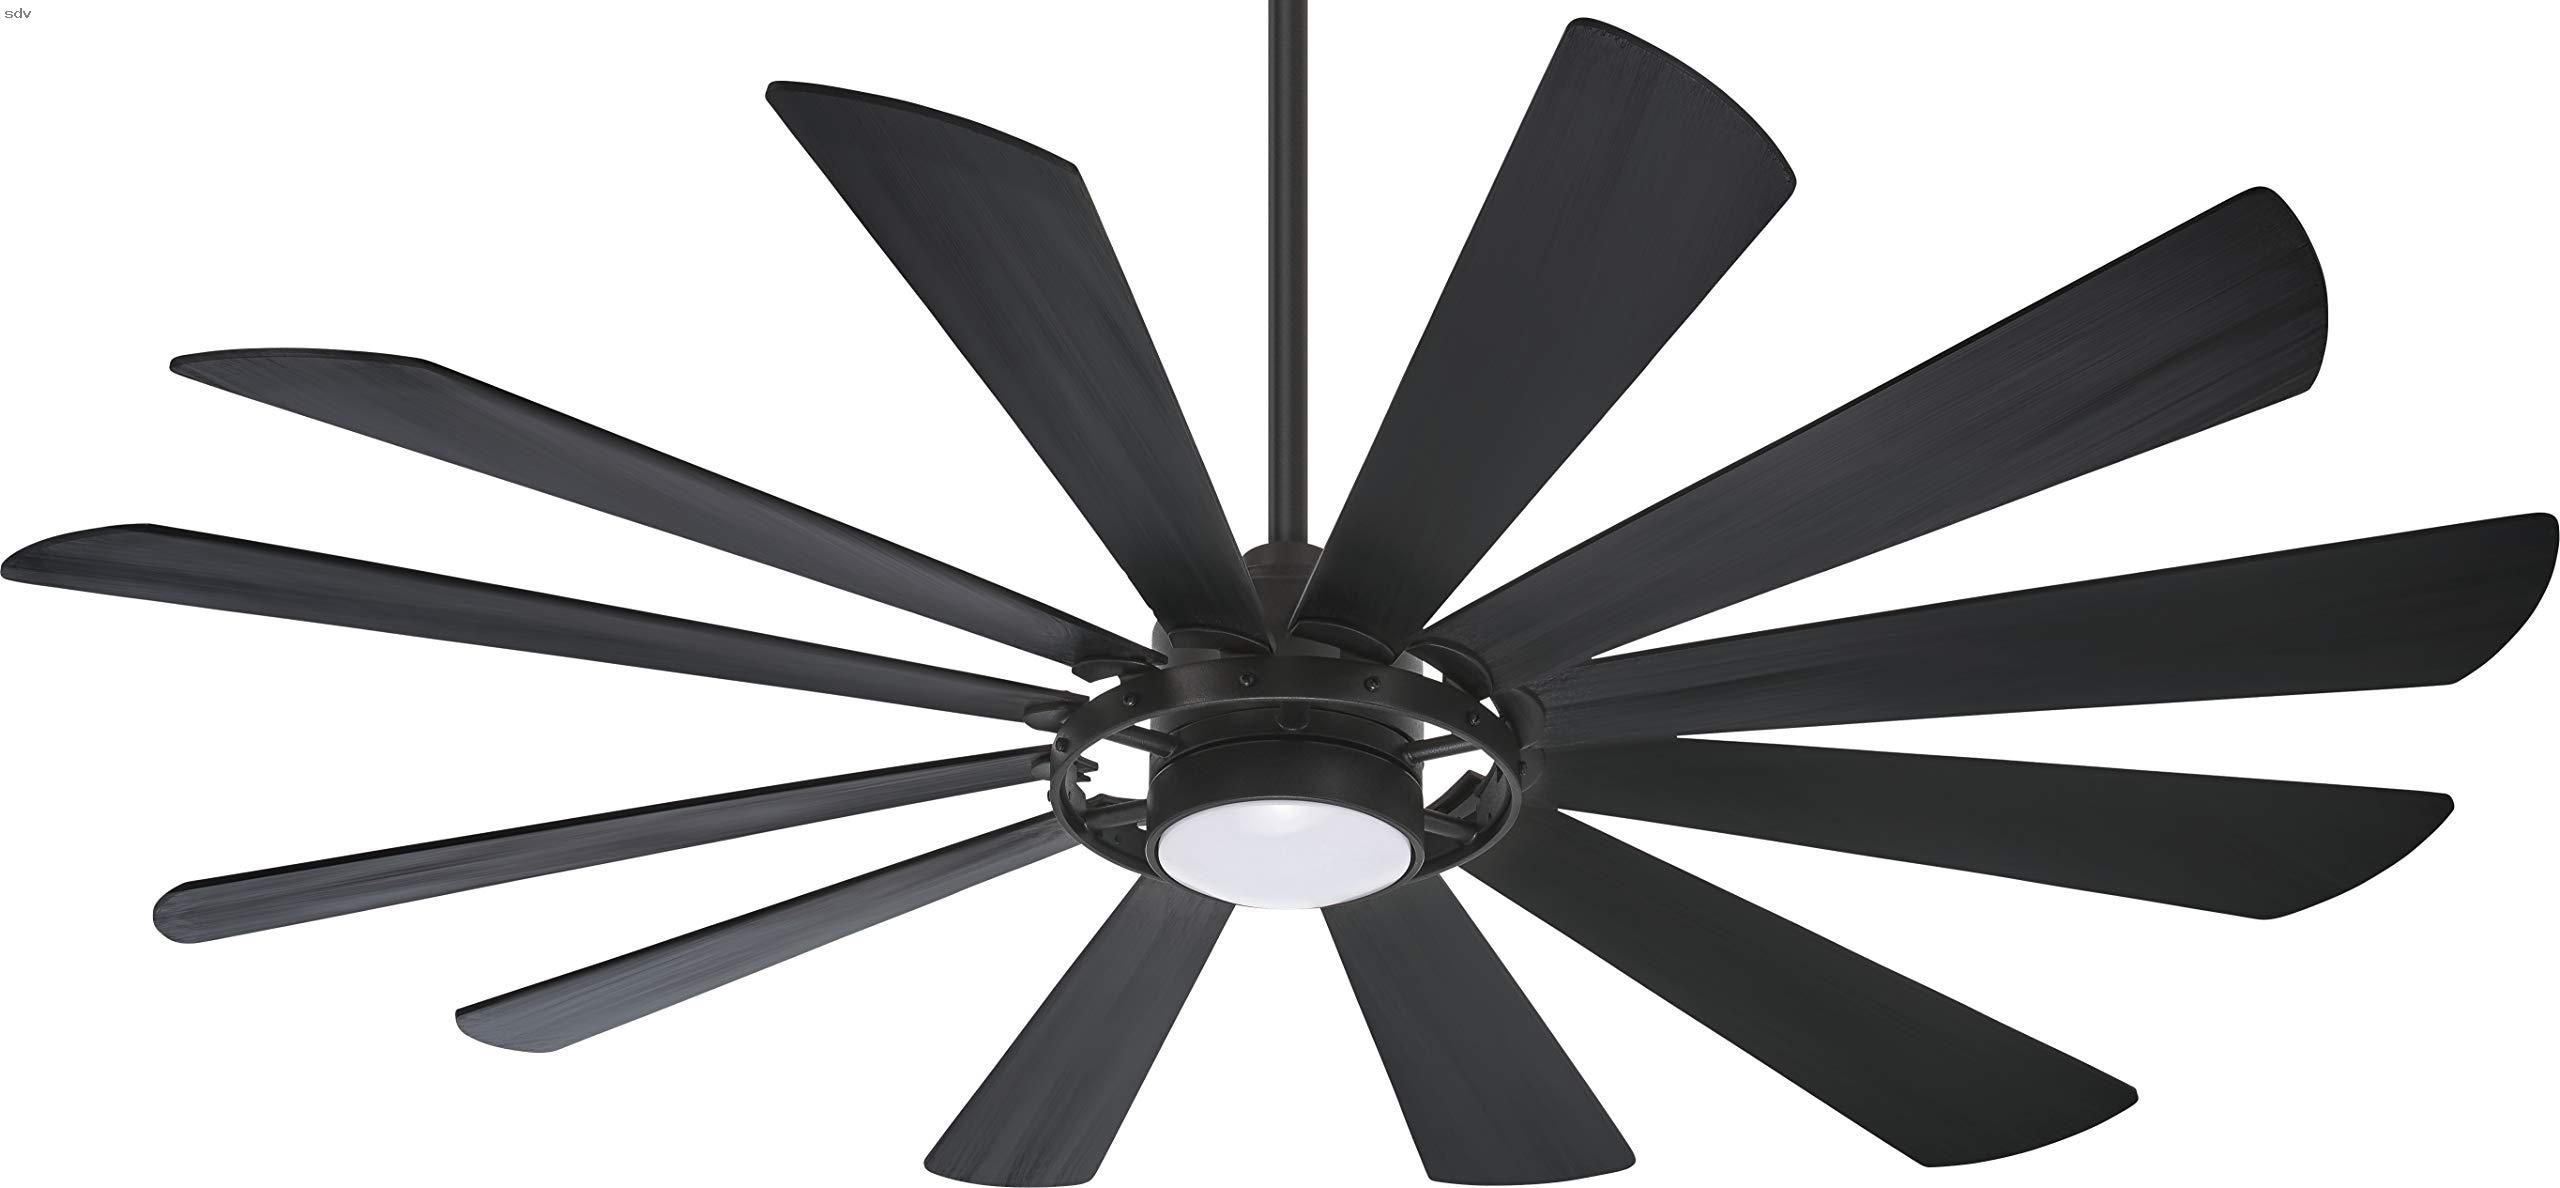 Minka Aire F870l Tcl Windmolen 65 Quot Outdoor Ceiling Fan With Led Light And Remote Control Textured Coal 65 Quot Blade Span 24 Degree Blade Pitch 123 X